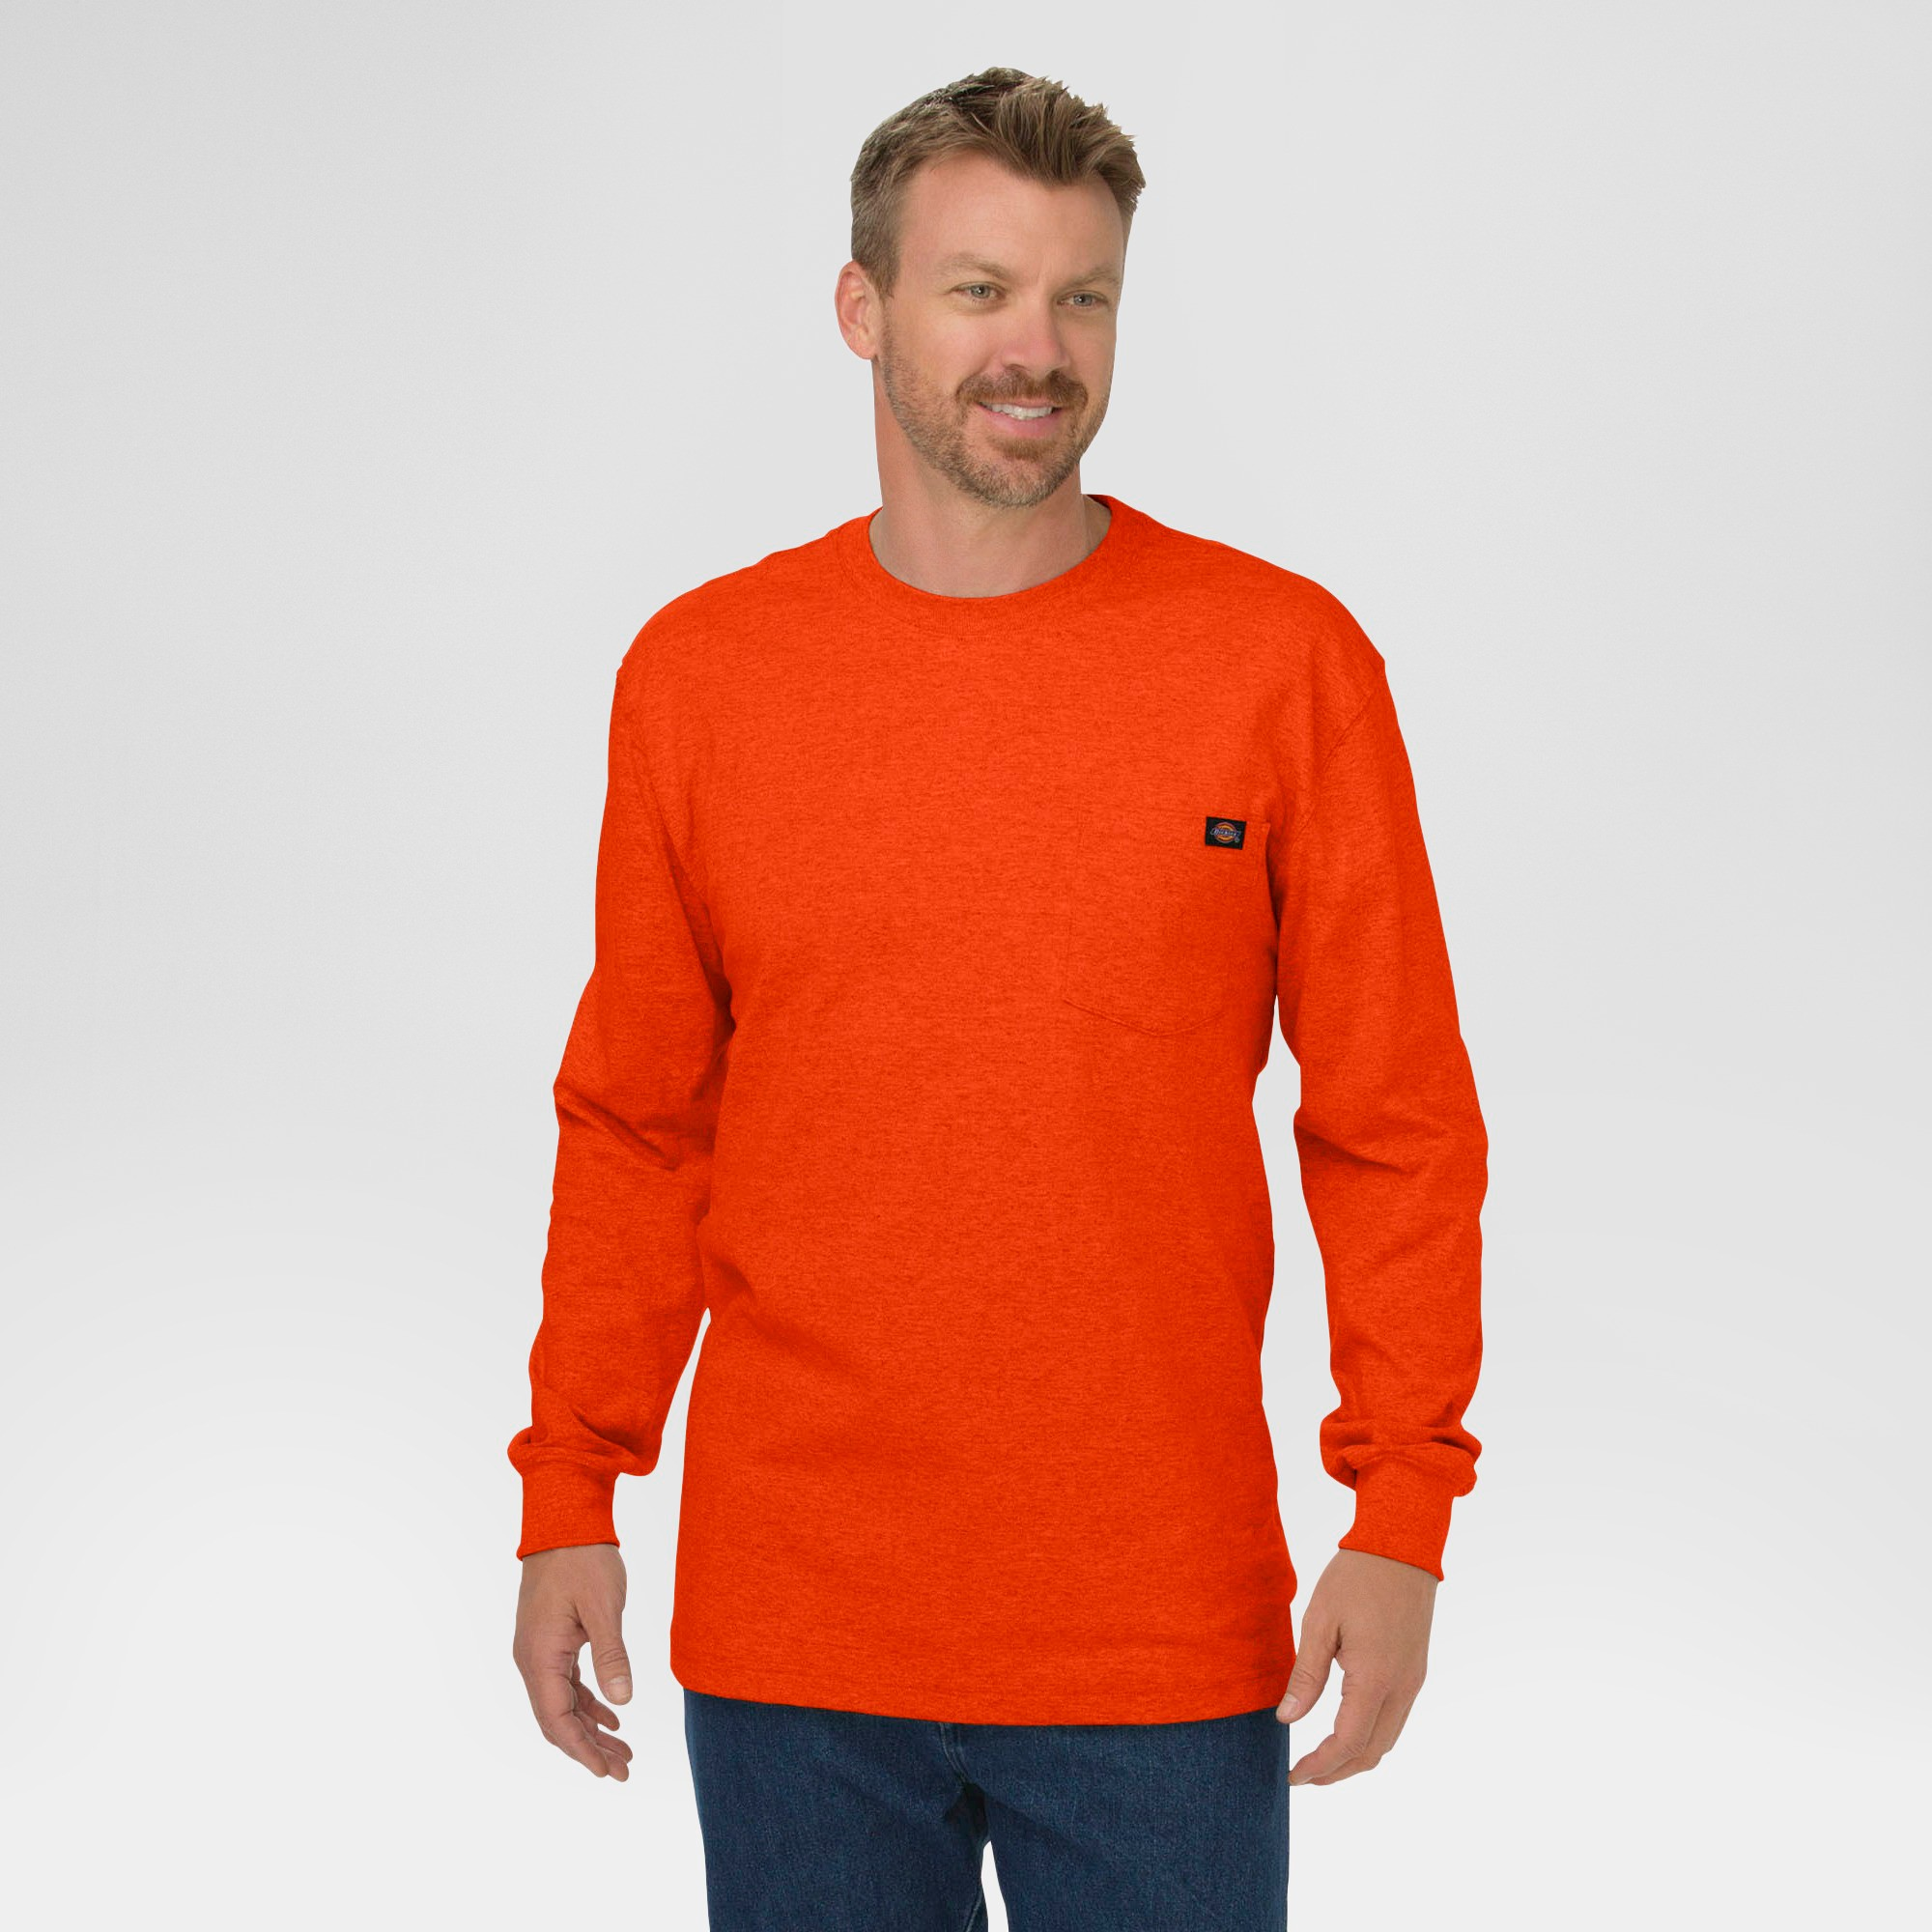 Dickies Men's Cotton Heavyweight Long Sleeve Pocket T-Shirt- Orange XL